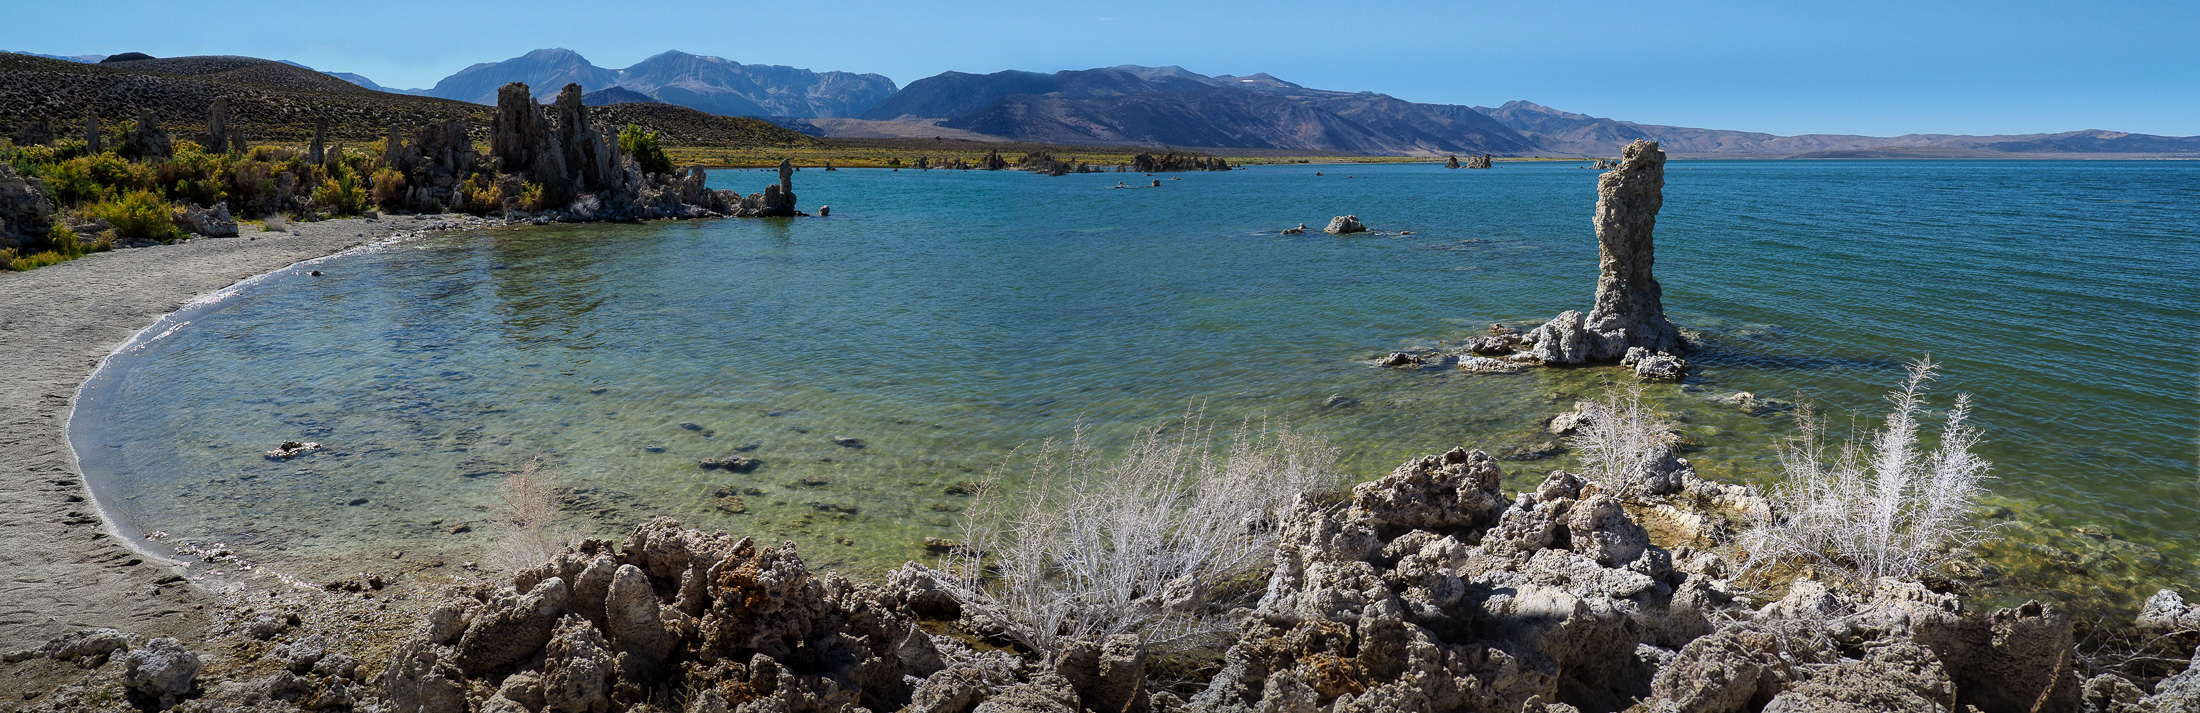 Panorama vom Mono Lake